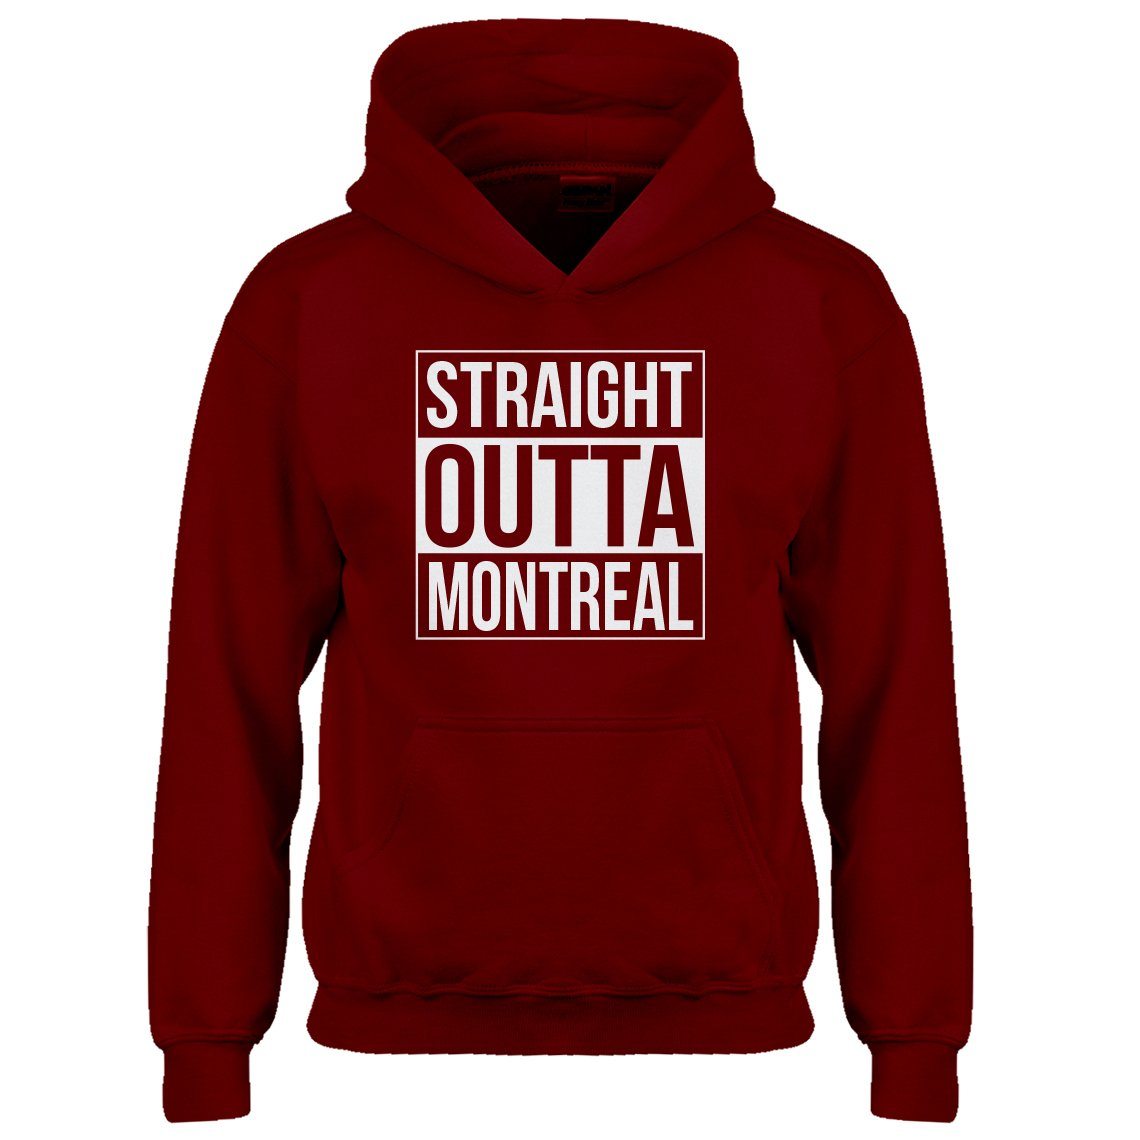 Indica Plateau Youth Straight Outta Montreal Kids Hoodie